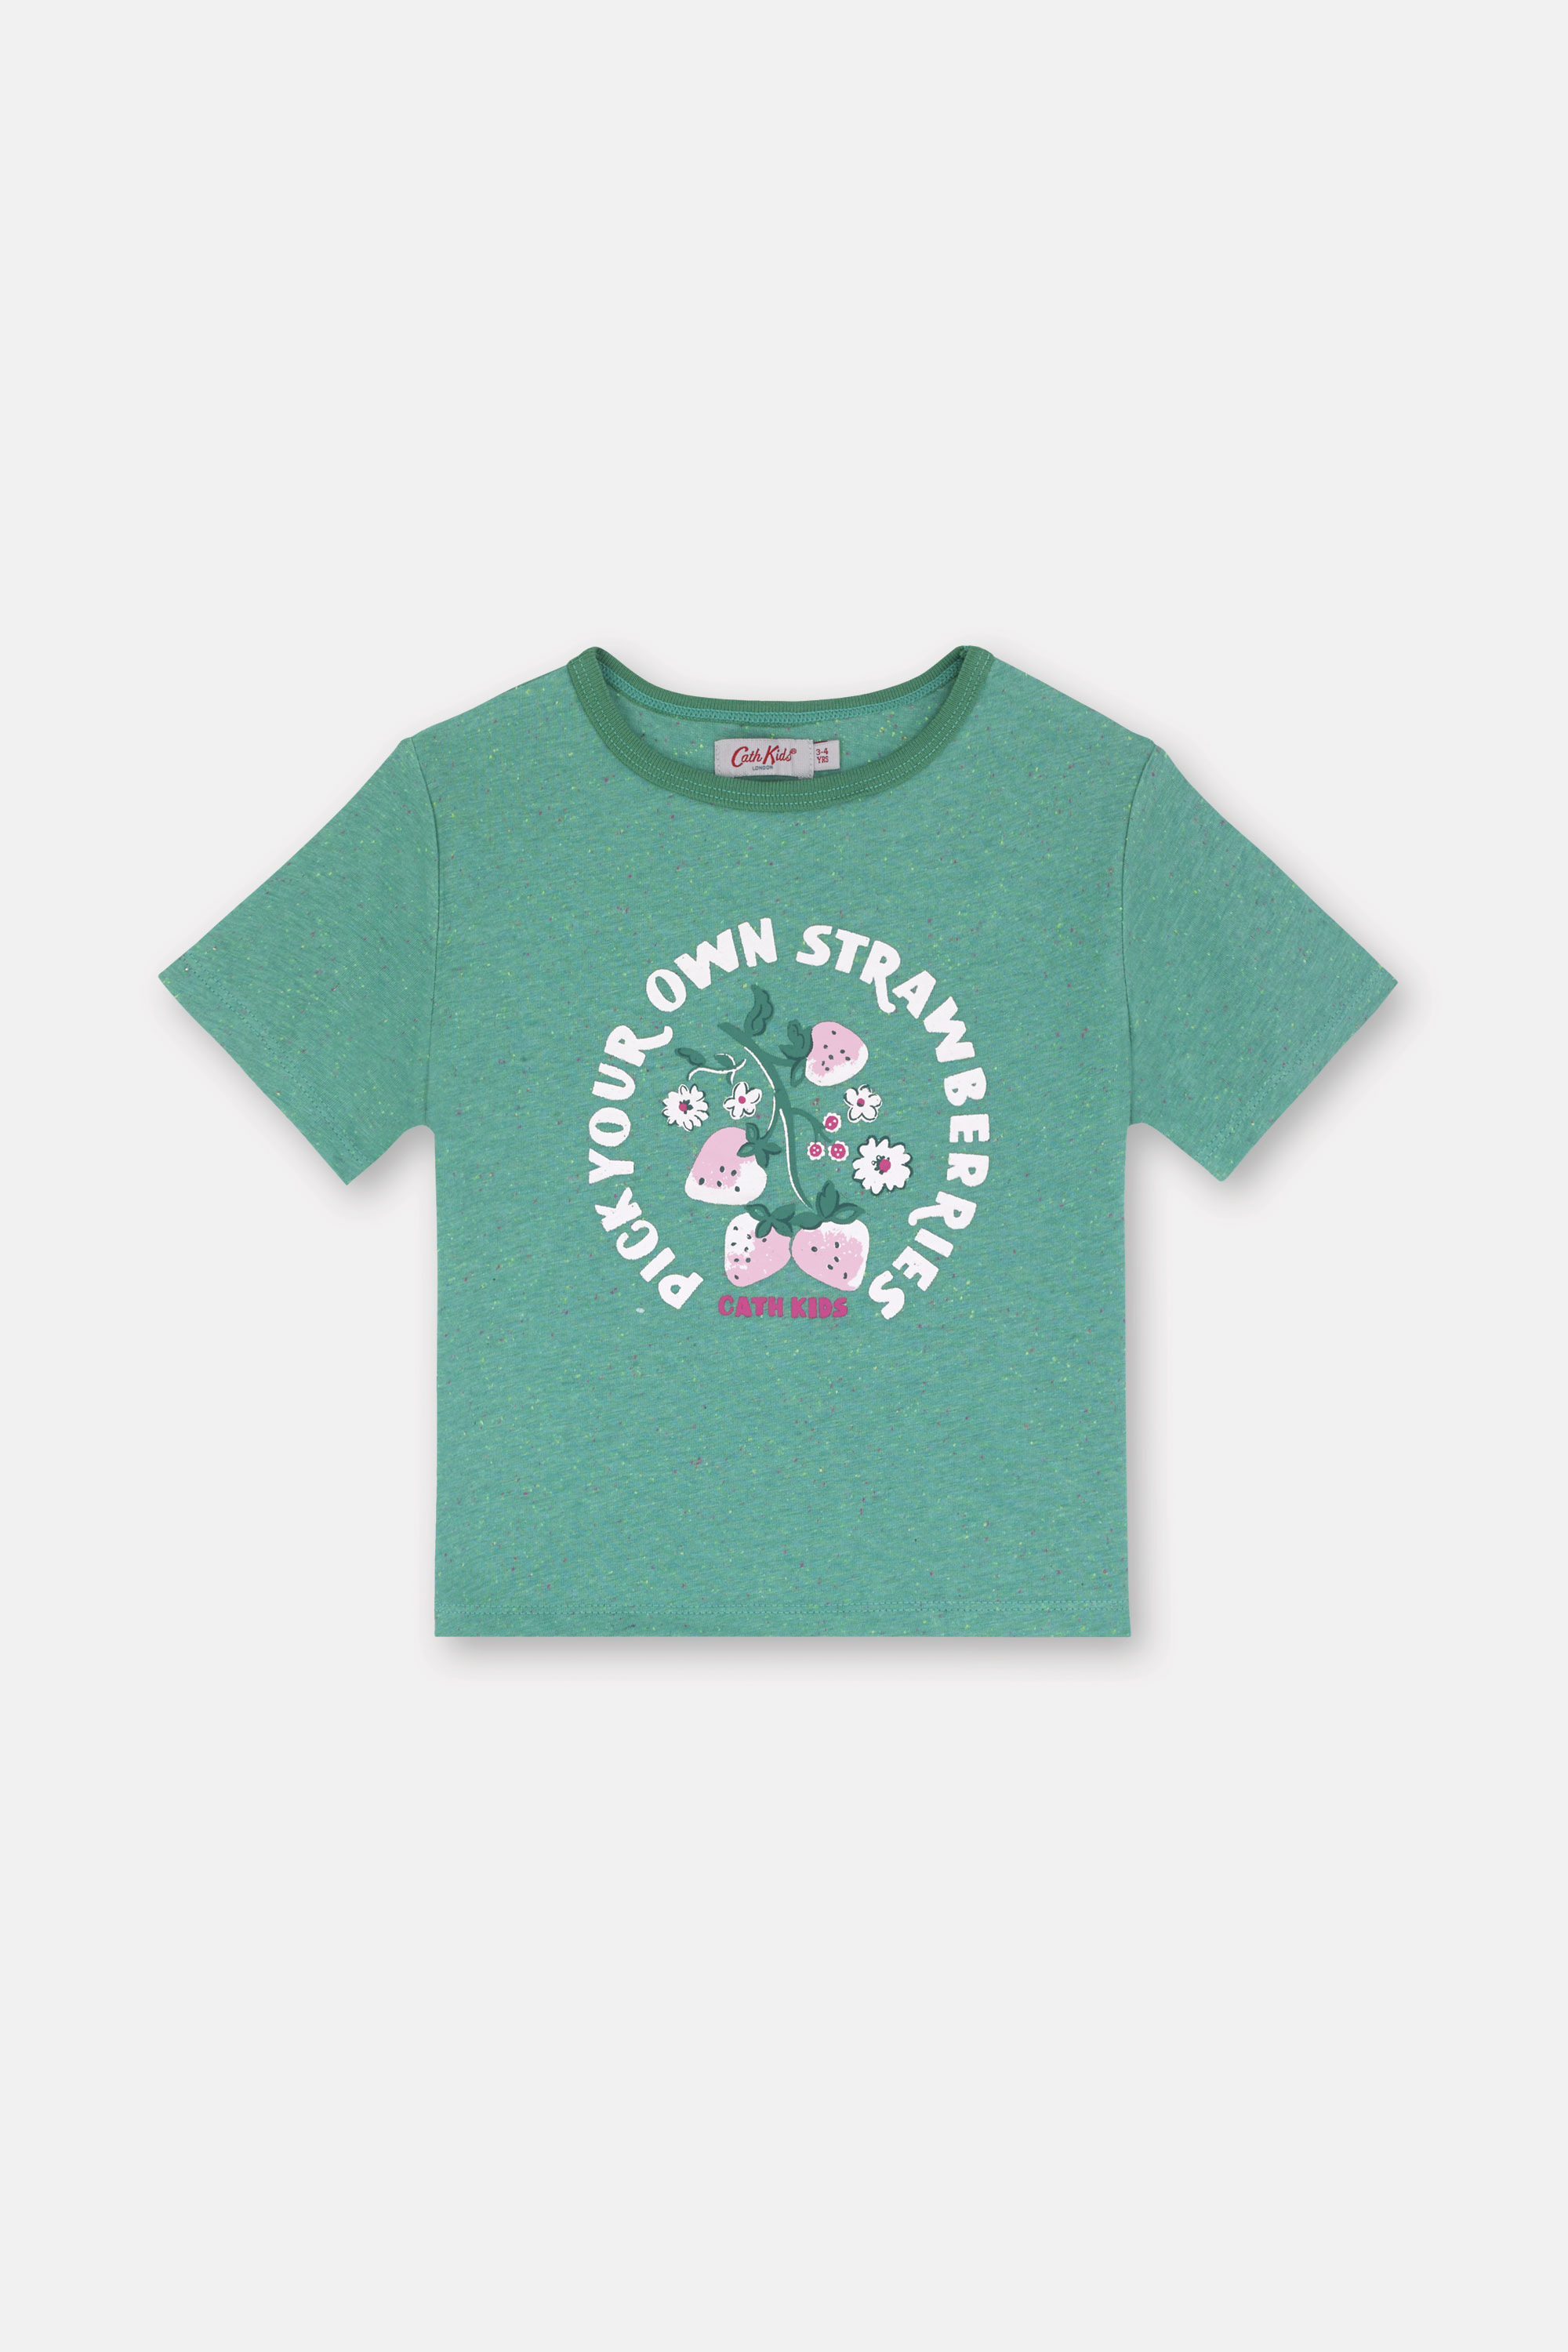 Cath Kidston Kids Short Sleeve T-Shirt in Green Marl, Sweet Strawberry, 100% Cotton, 3-4 yr